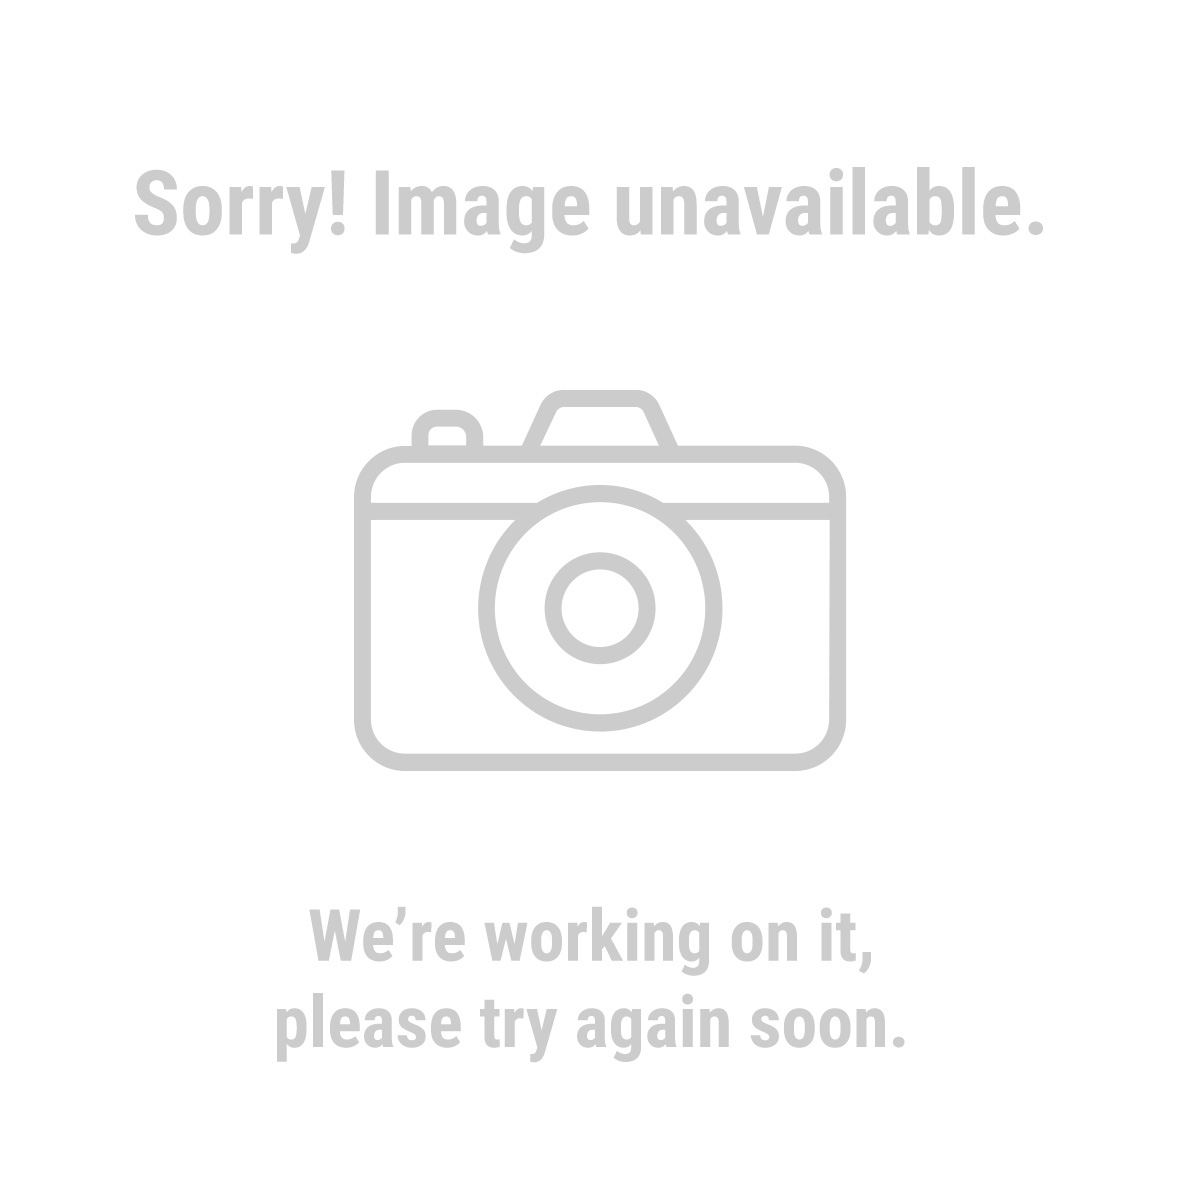 "Warrior 69435 5-1/2"", 24 Tooth Carbide Tipped Circular Saw Blade"